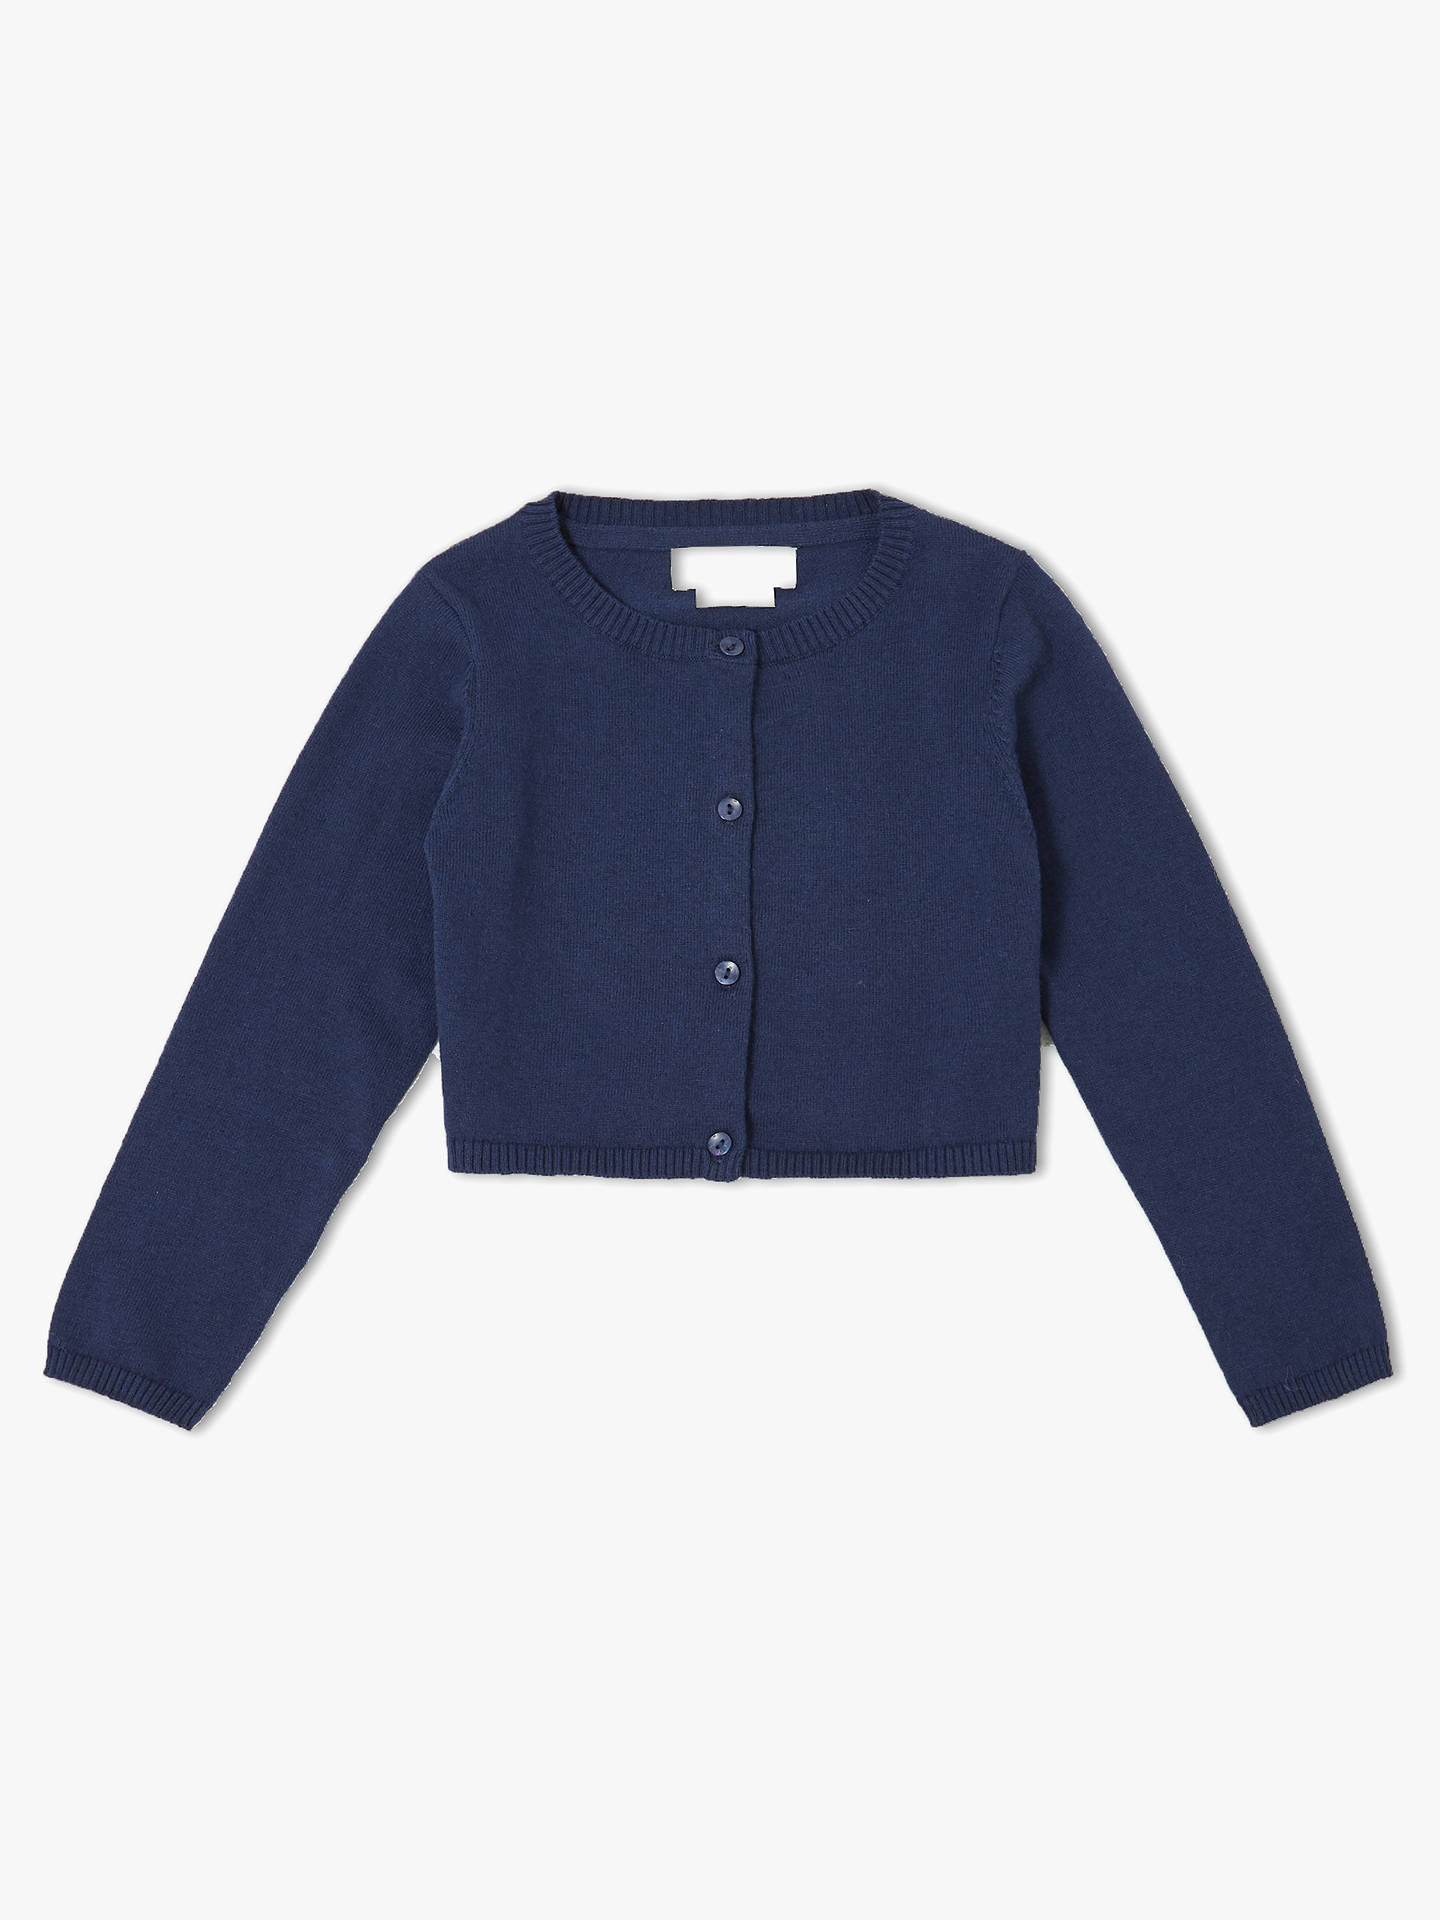 BuyJohn Lewis & Partners Girls' Shrug Cardigan, Navy, 13 years Online at johnlewis.com